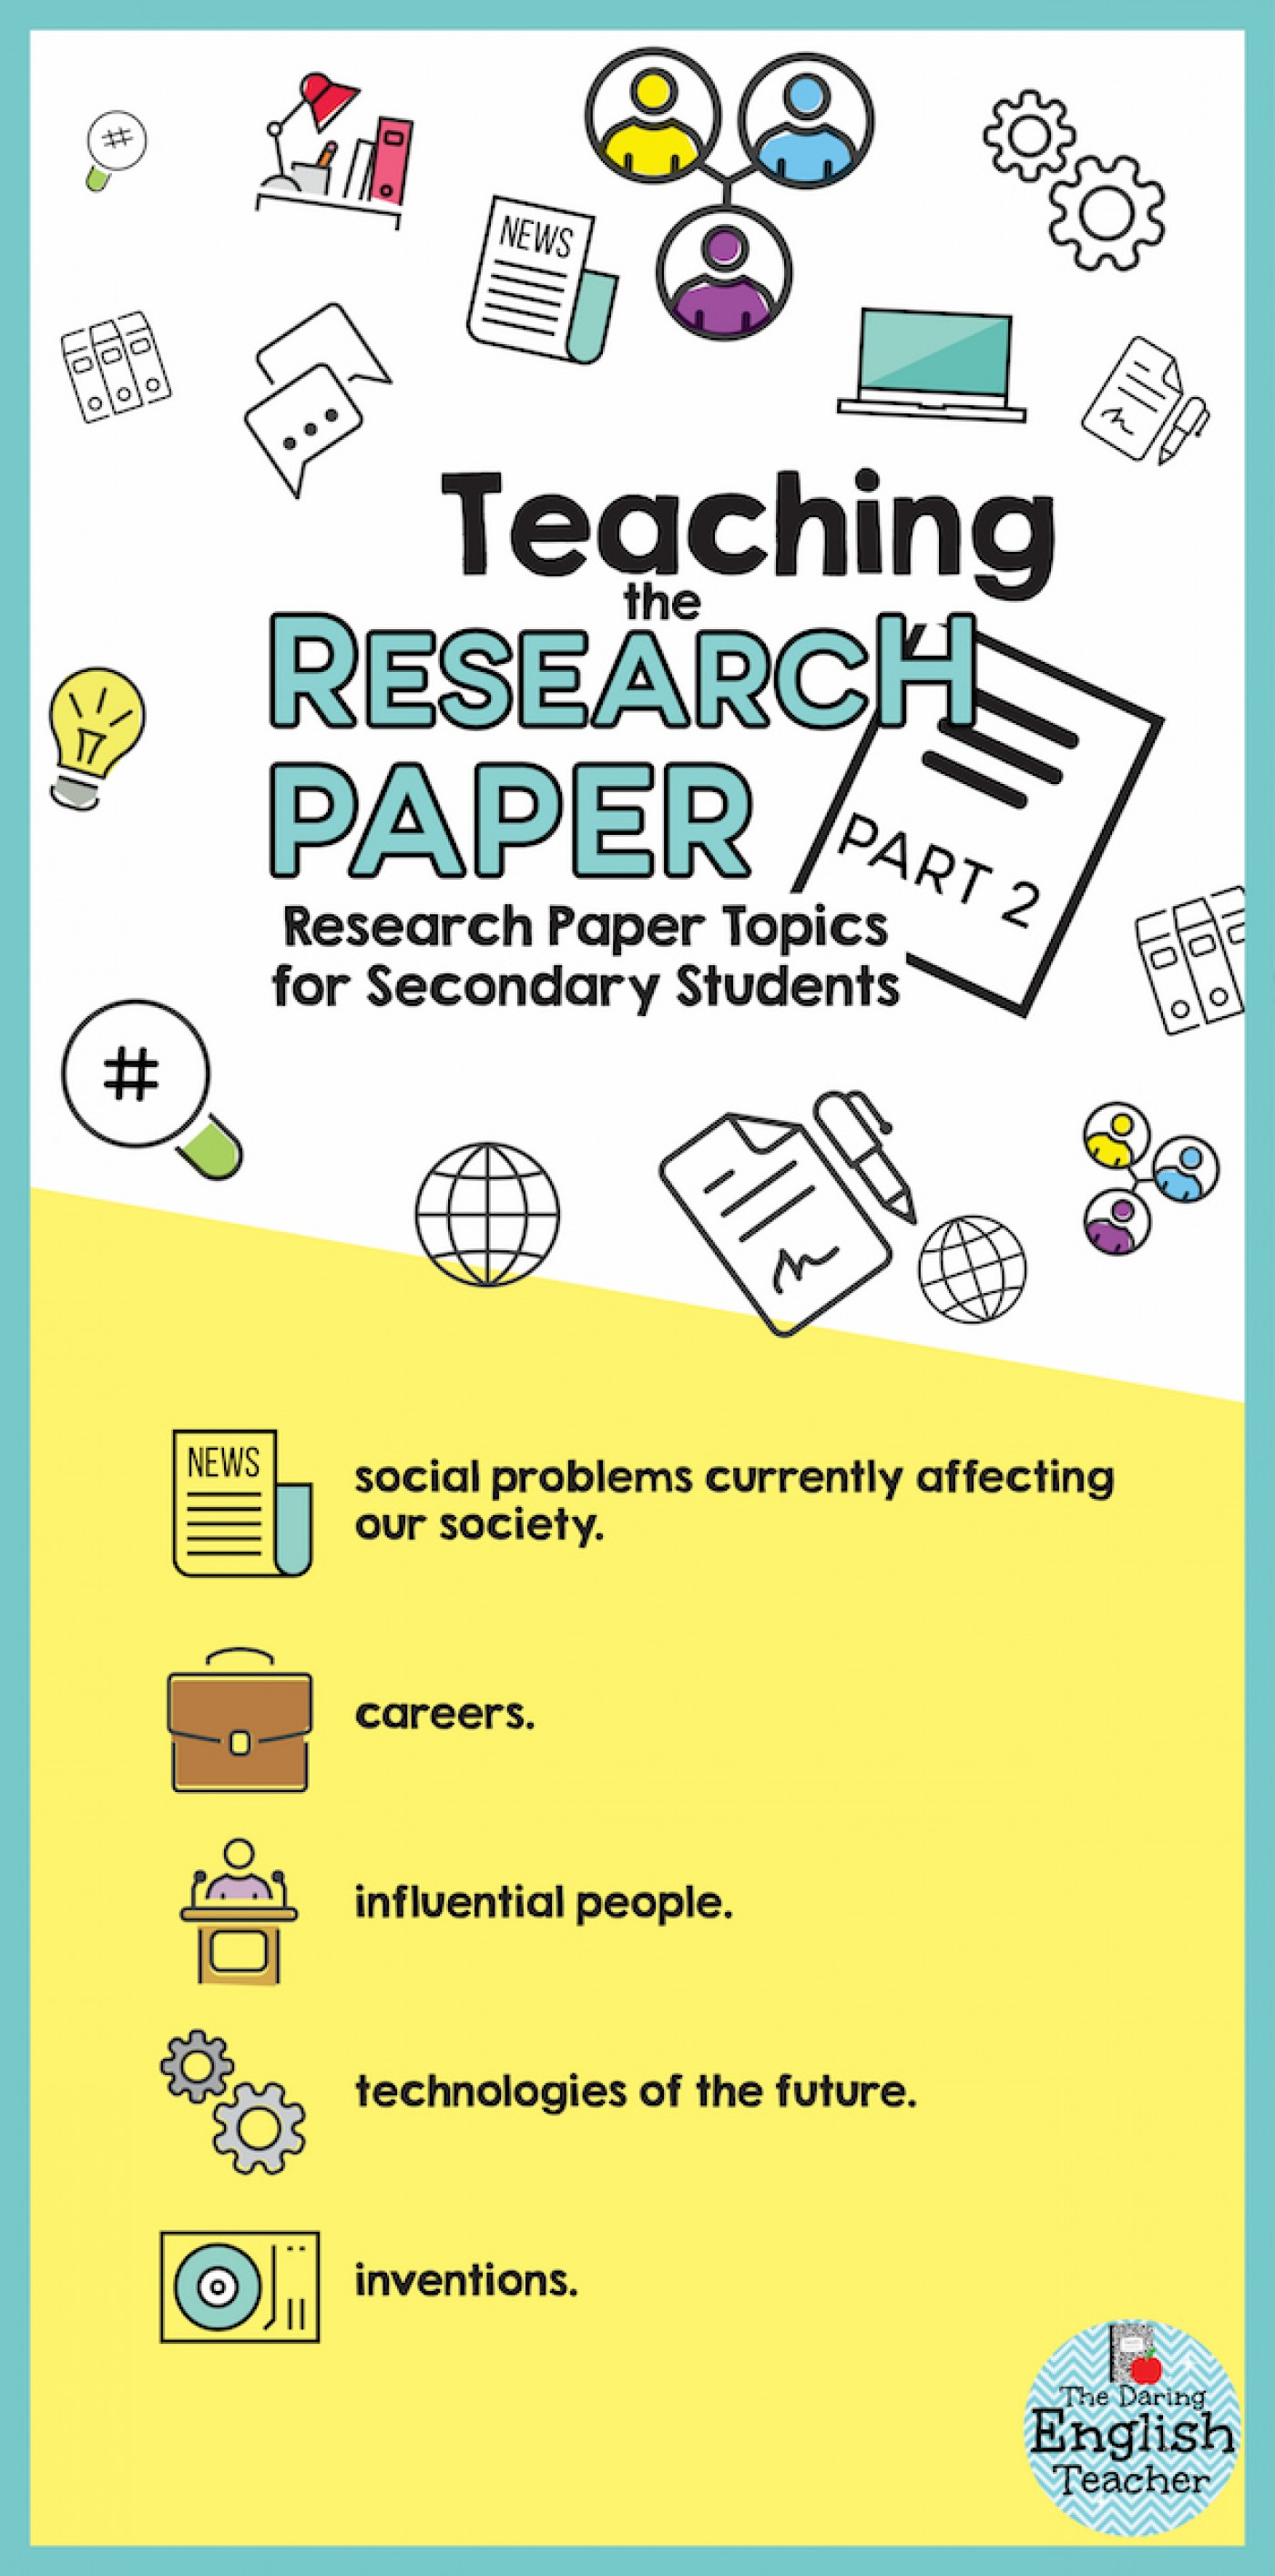 020 Infographic2bp22b2 Research Paper Topic For Unusual A About Business Topics 2018 In Psychology 1400